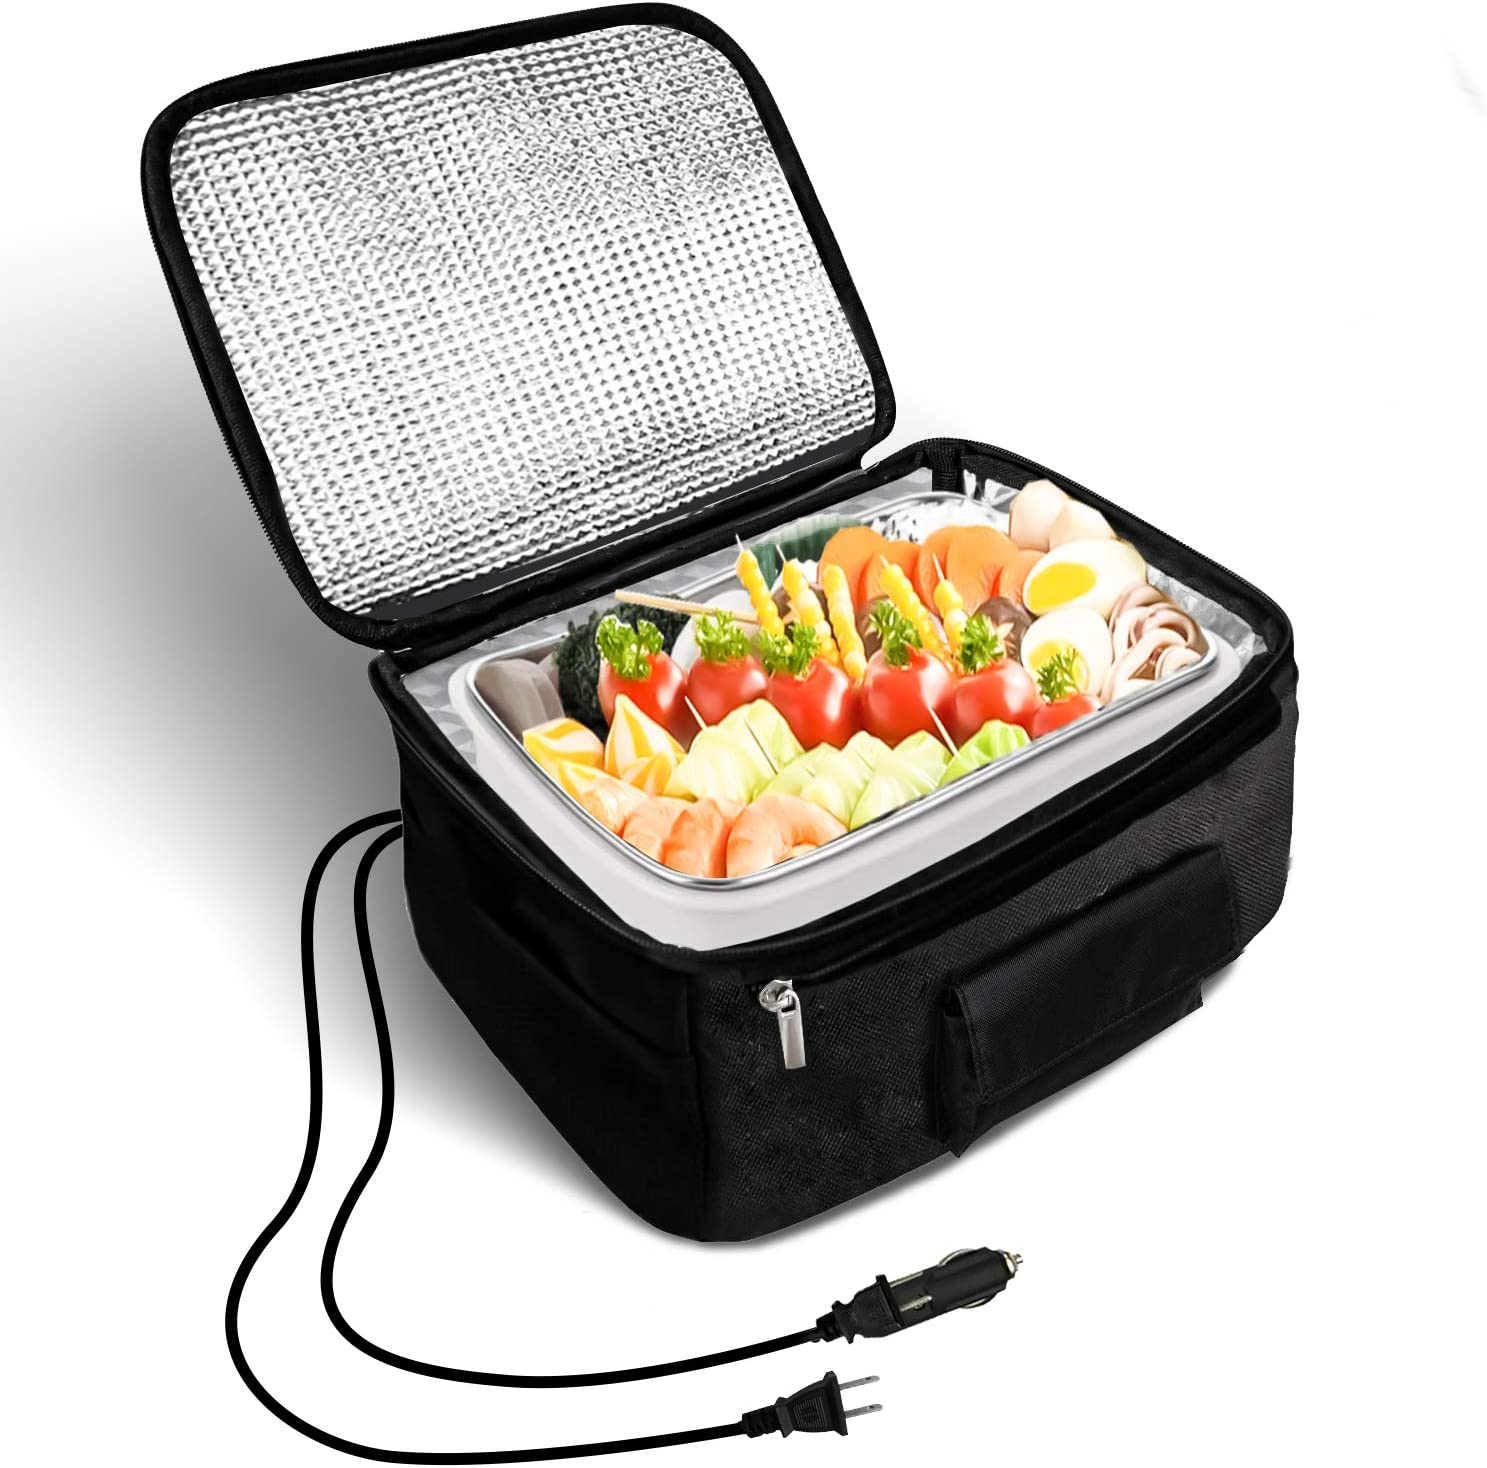 HTDZ Portable Oven Heated Personal Food Warmer Lunch box(12V and 110V Dual Use) for Car, Or Prepared Meals Reheating at Work Without Using Office Microwave